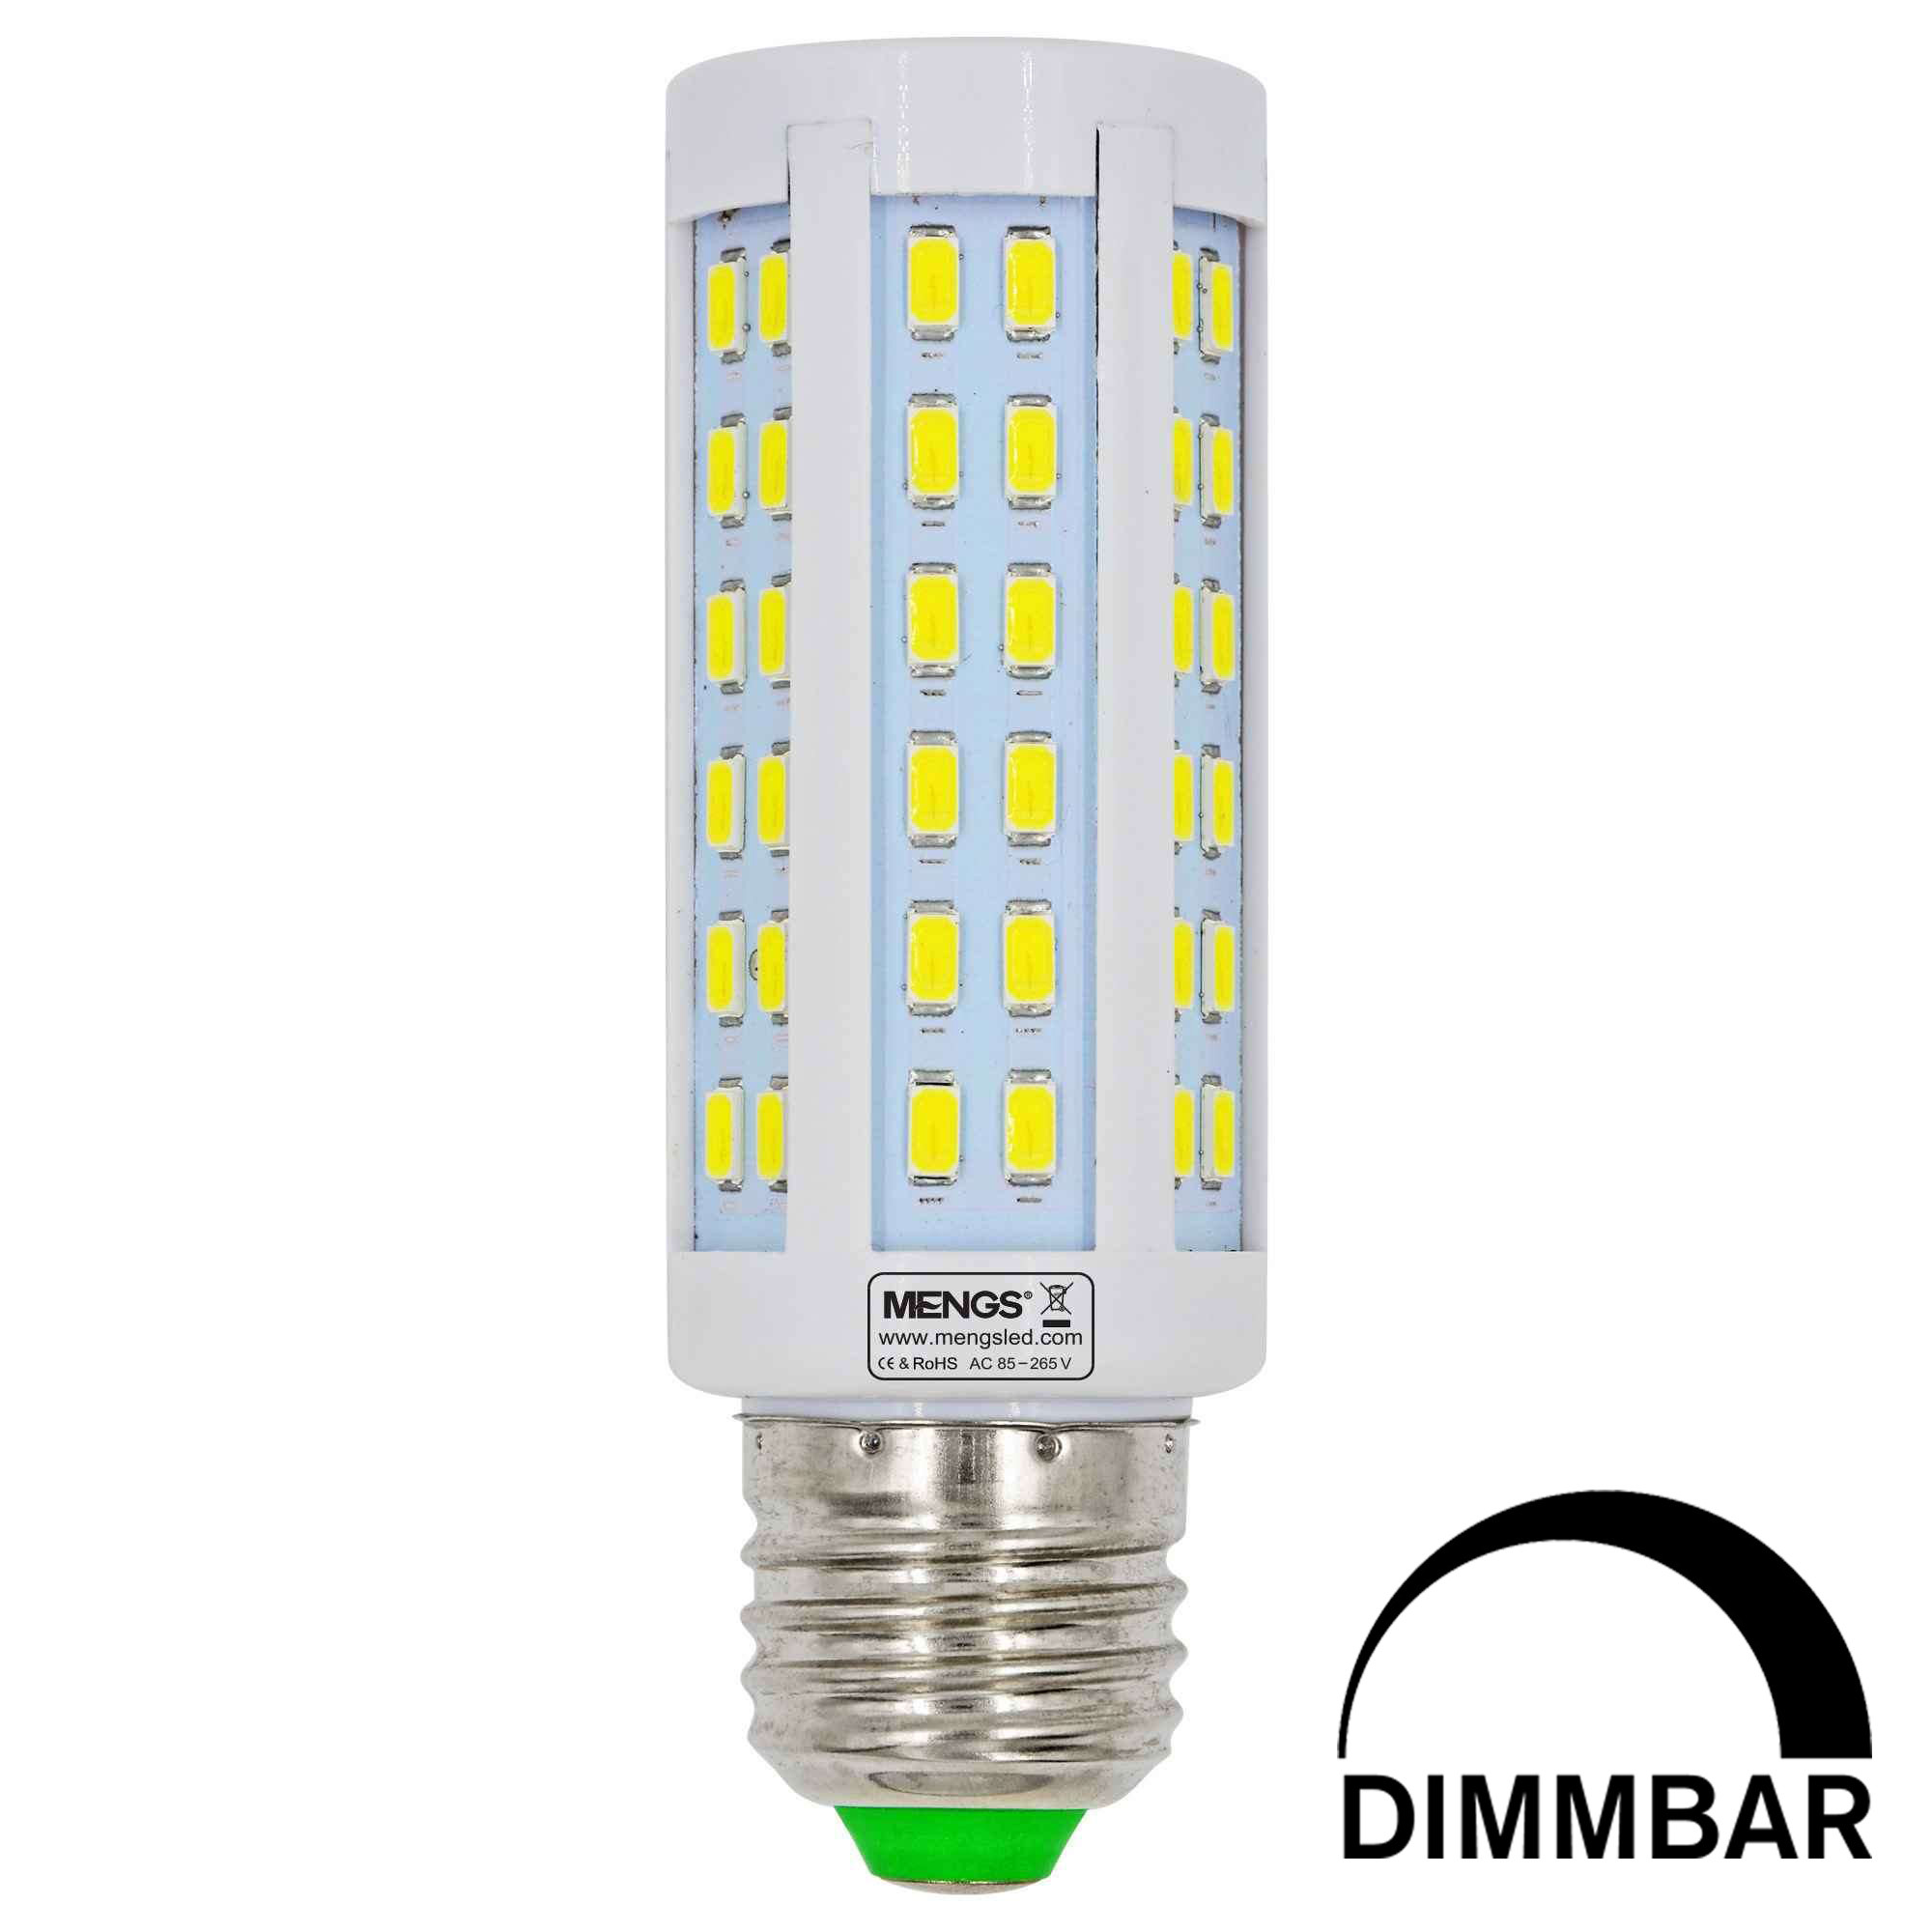 e27 10w led dimmable corn light 84x 5730 smd led bulb lamp. Black Bedroom Furniture Sets. Home Design Ideas